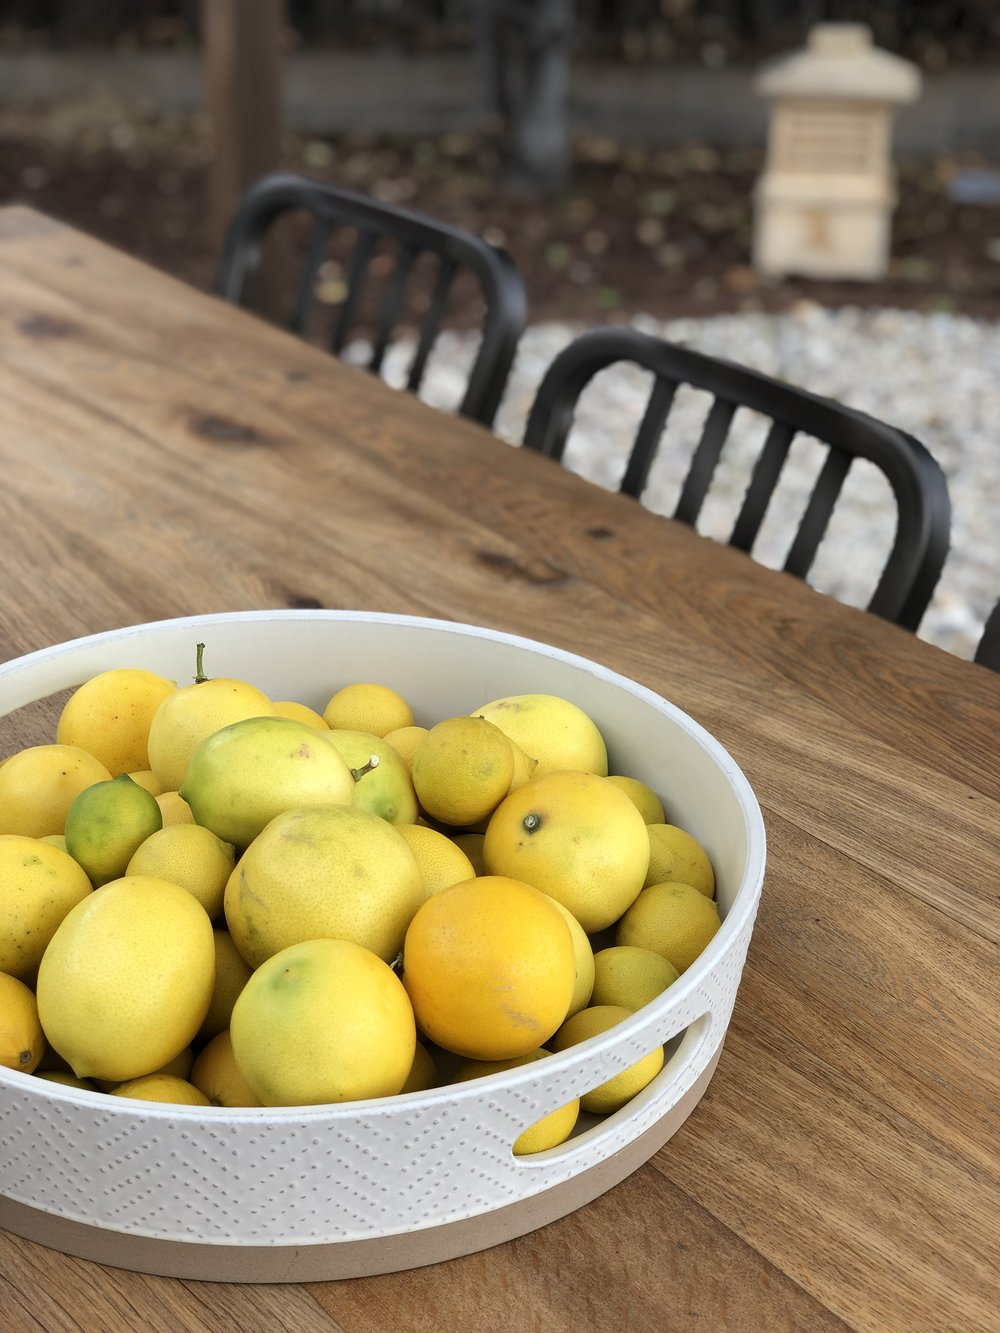 Guests on the day of the brunch brought all kinds of delicious treats including these Meyer lemons- mixed here with limes from our tree.